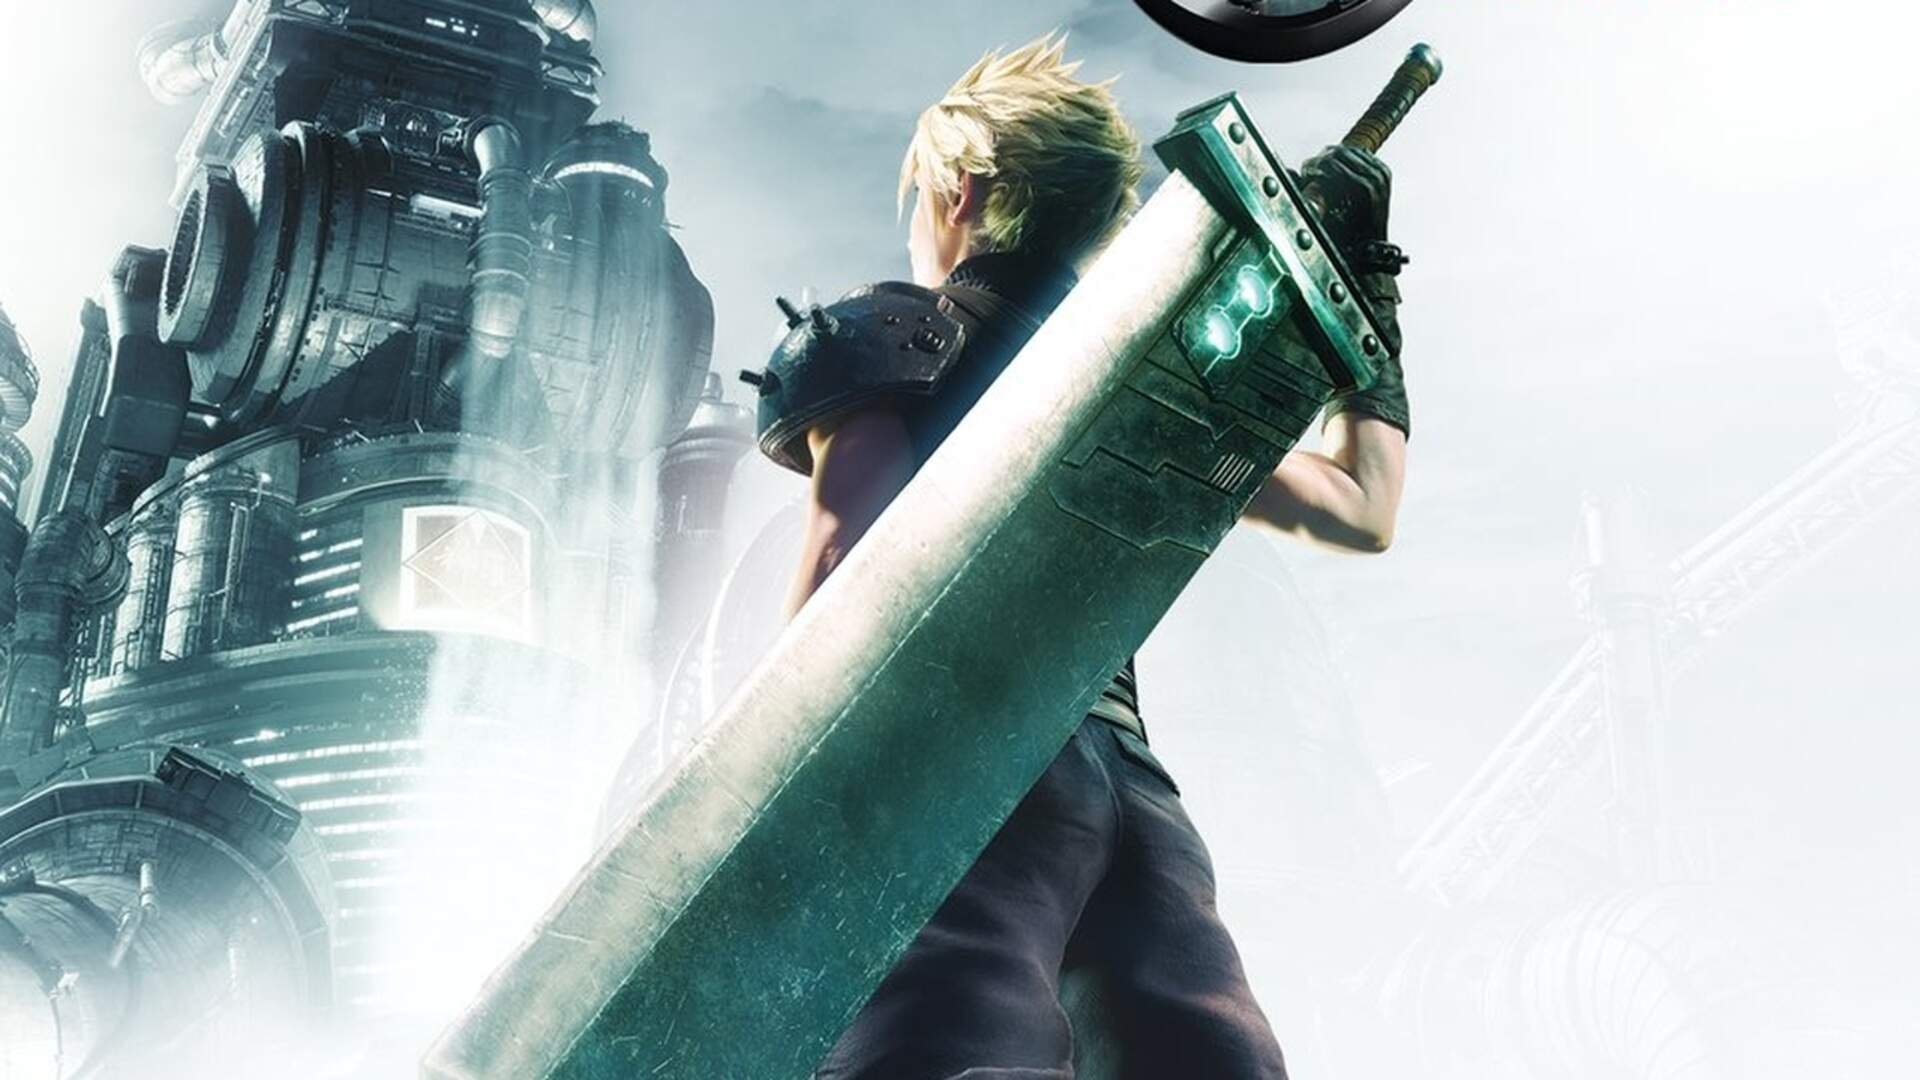 Final Fantasy 7 Remake's Box Art is a Callback to the Original